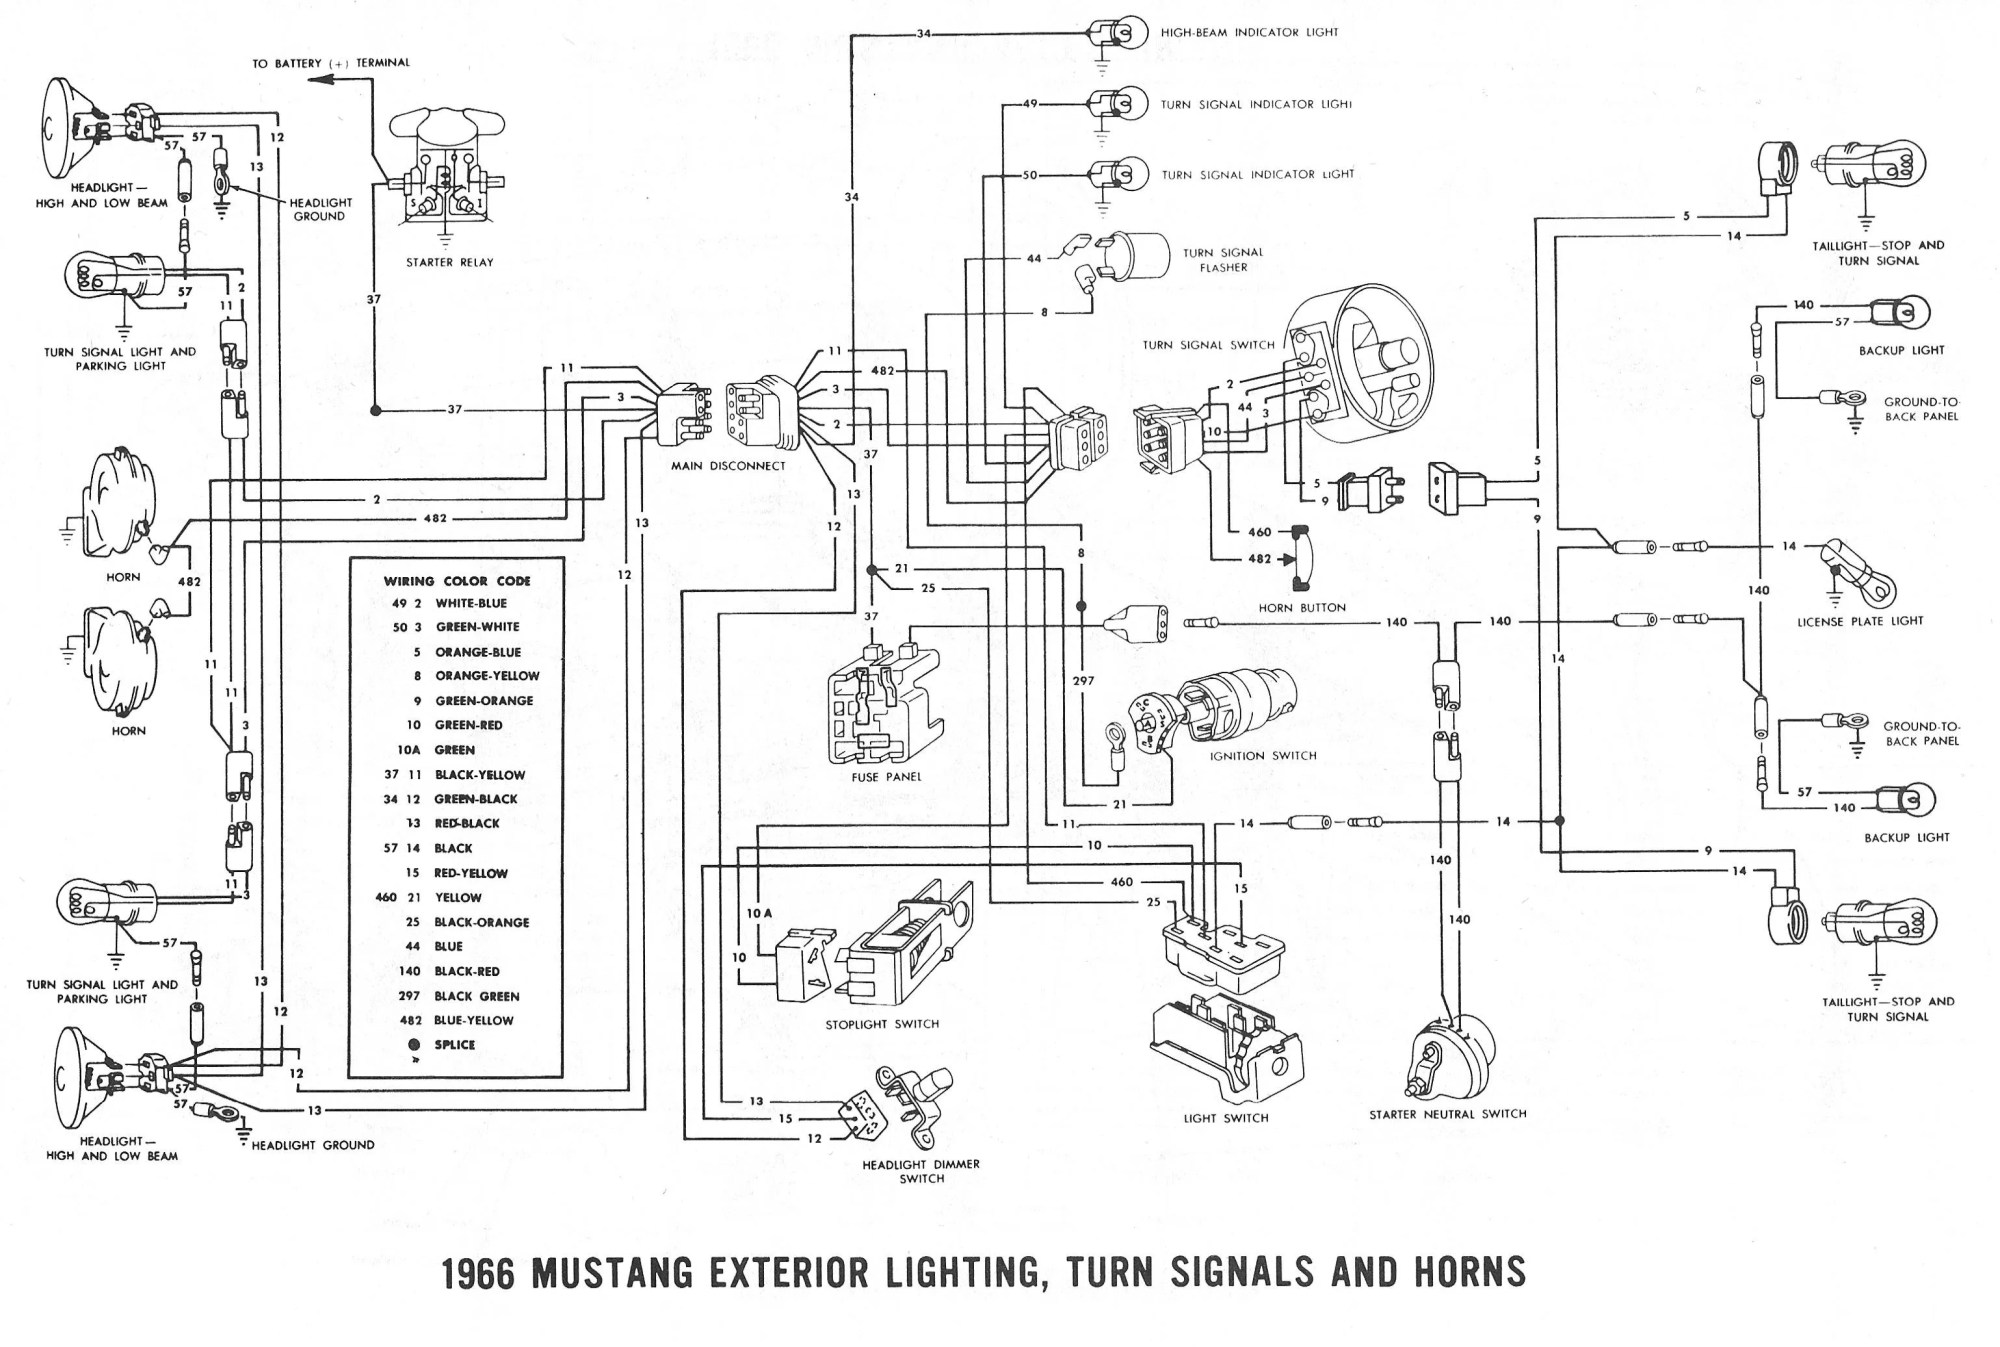 hight resolution of 1966 corvair turn signal wiring diagram wiring diagrams konsult 1966 corvair turn signal wiring diagram